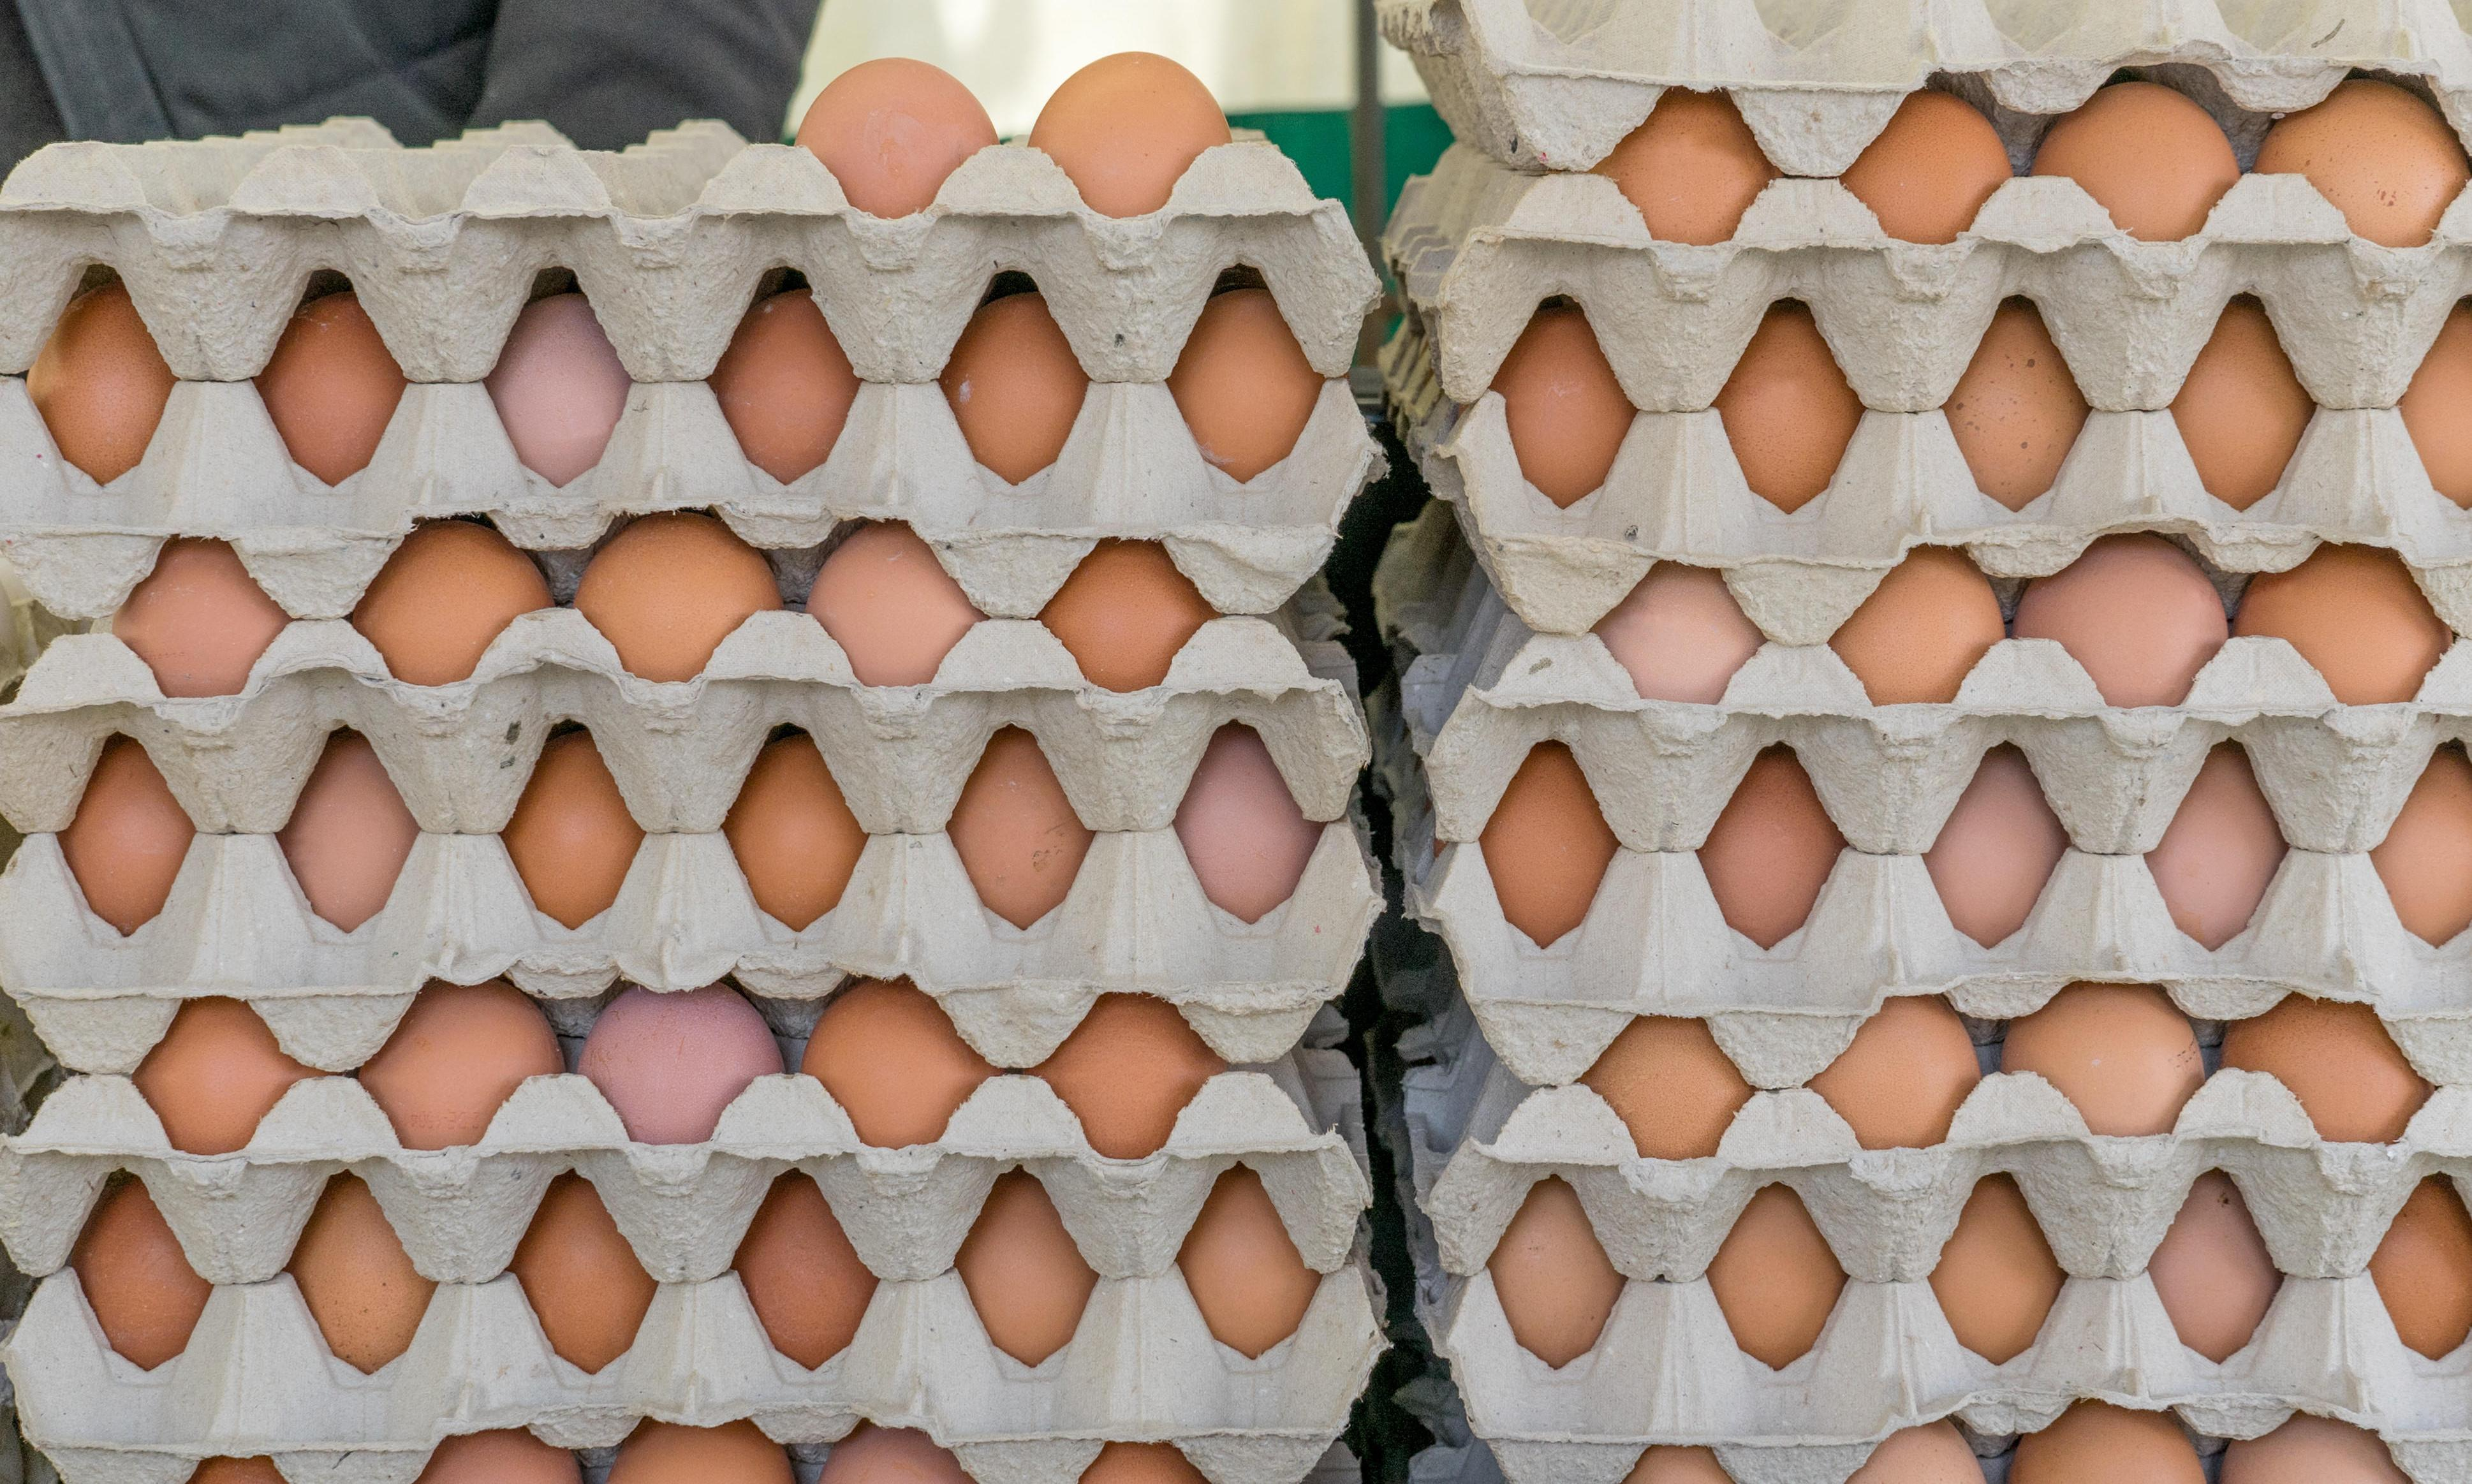 Salmonella alert issued after 100 people infected by UK eggs in three years